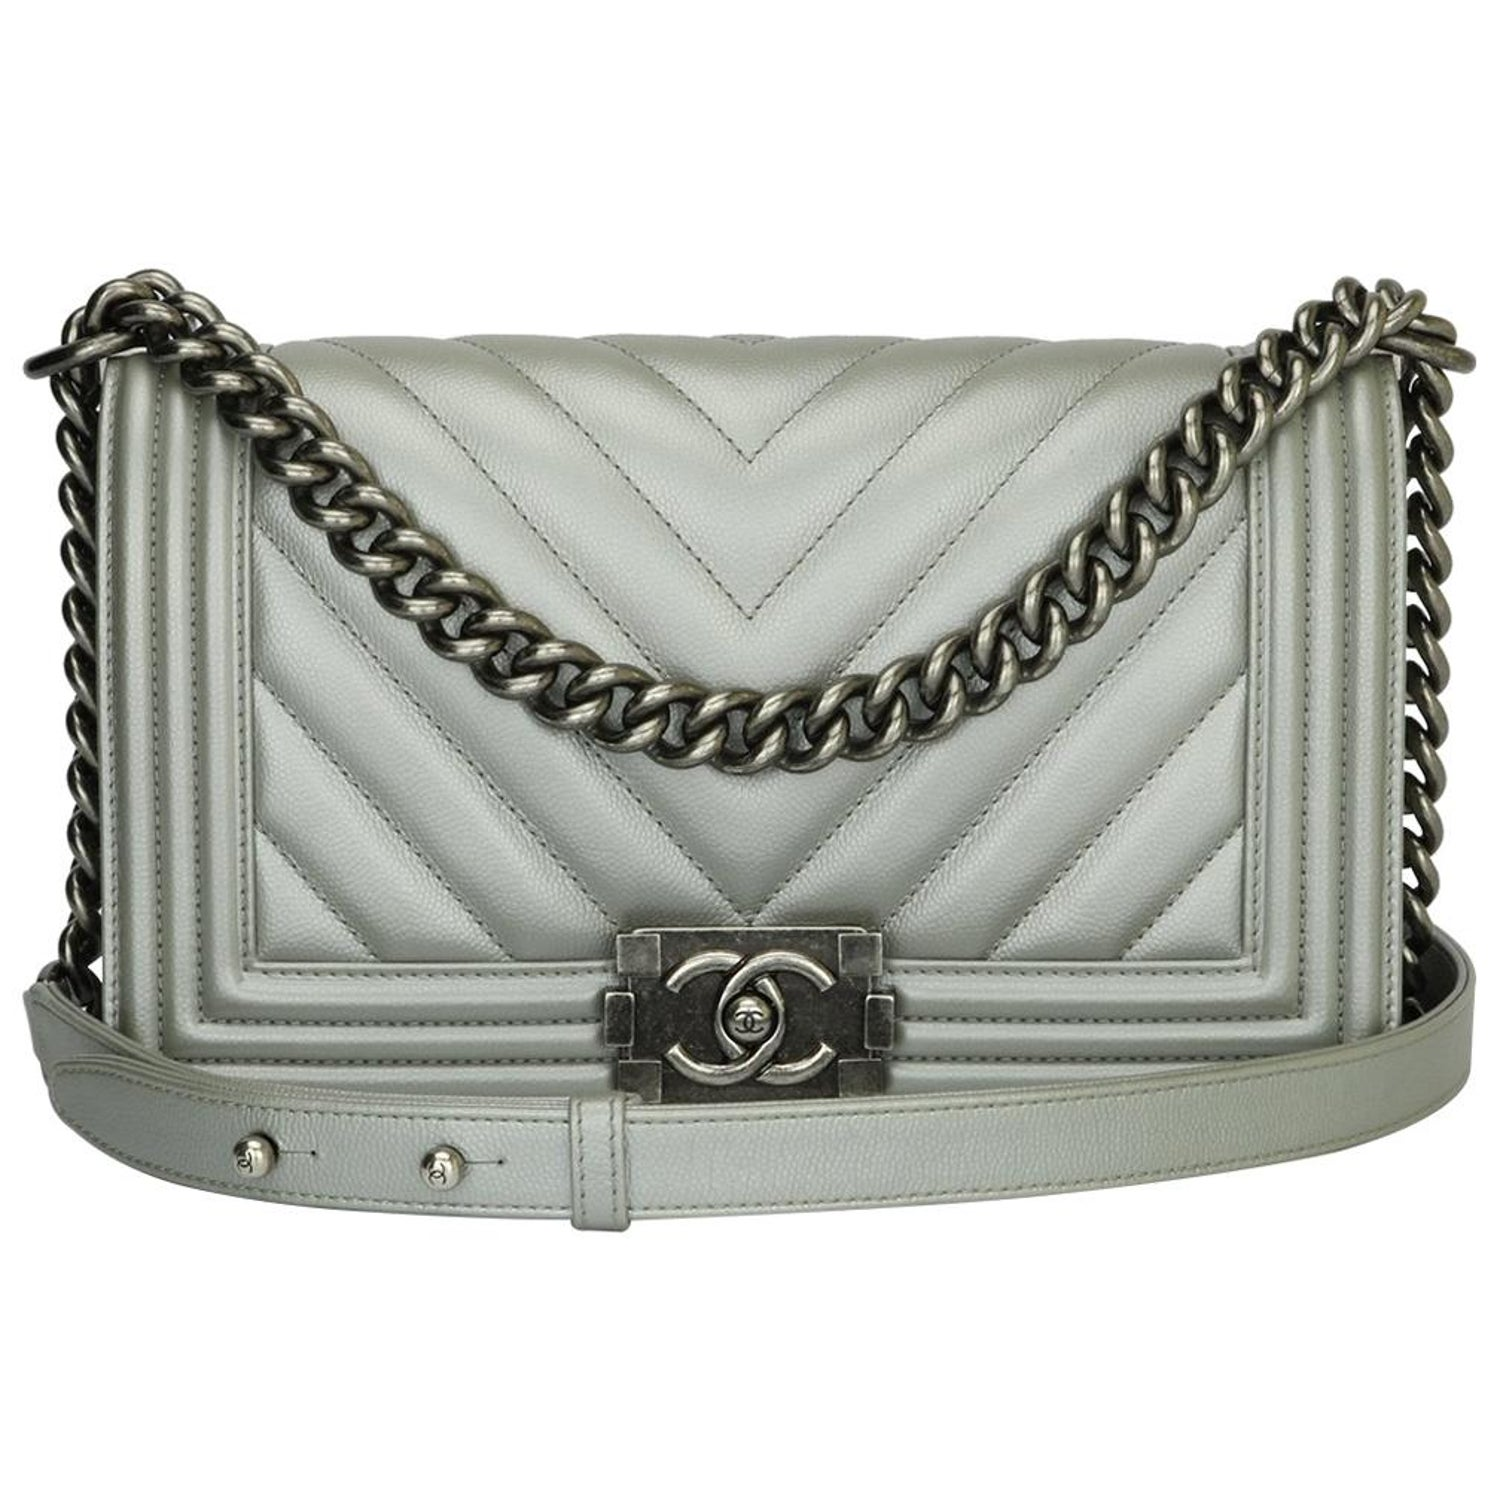 e53e9514f3887f CHANEL Old Medium Chevron Boy Bag Silver Caviar with Ruthenium Hardware  2016 at 1stdibs